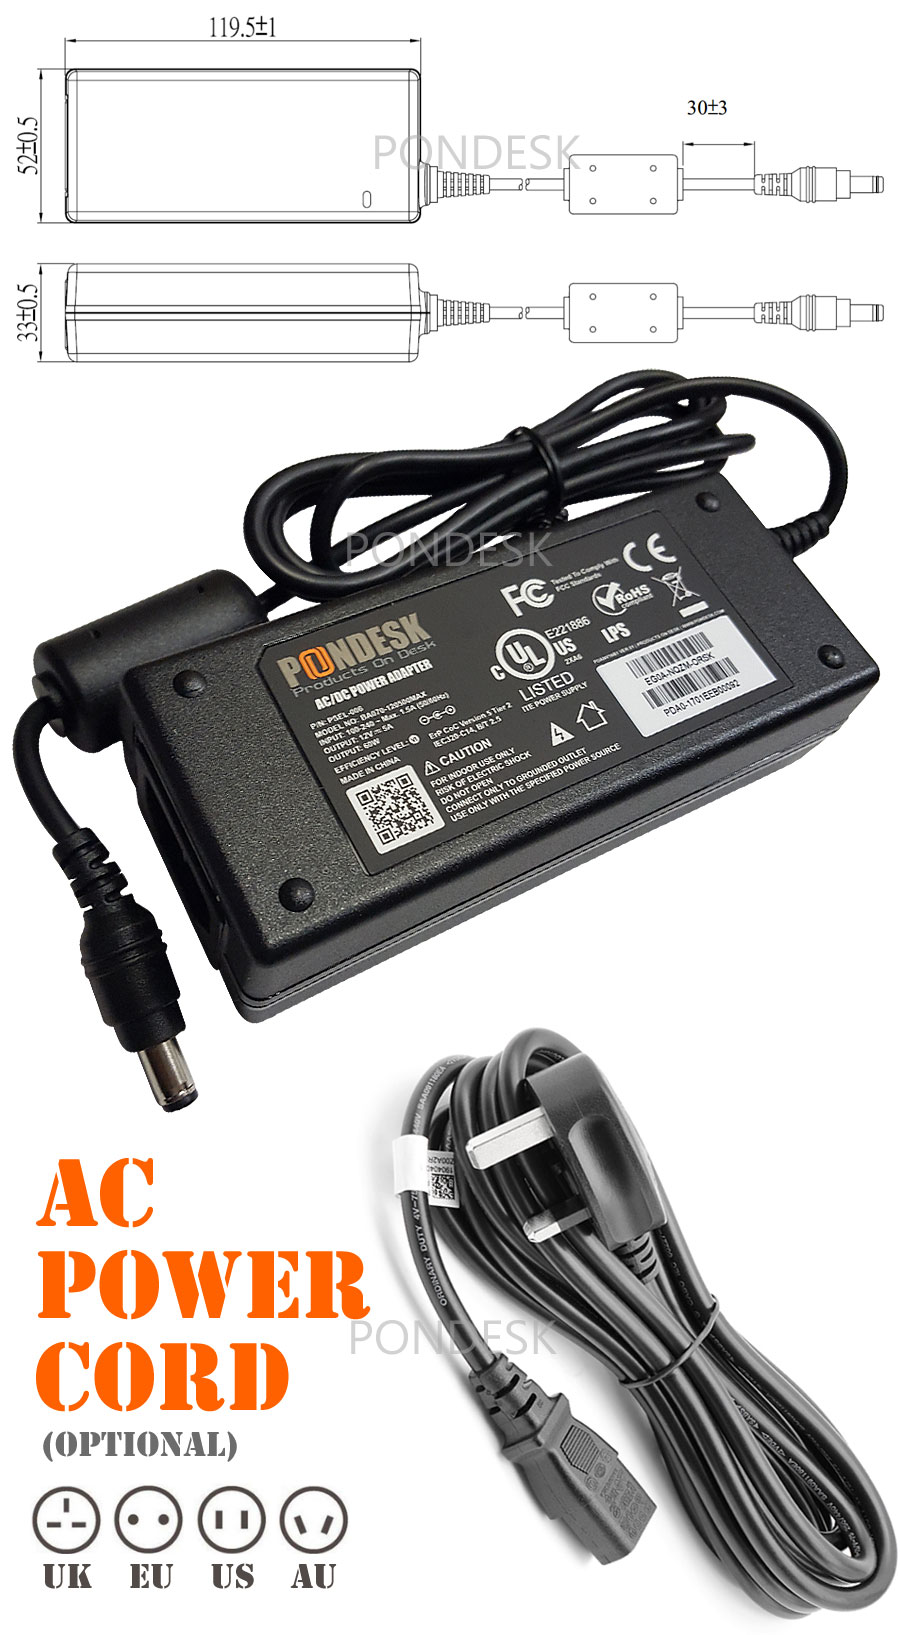 DOE Level VI 12V 5A 60W Switching Desktop AC Power Adapter - PSEL-006 | Image